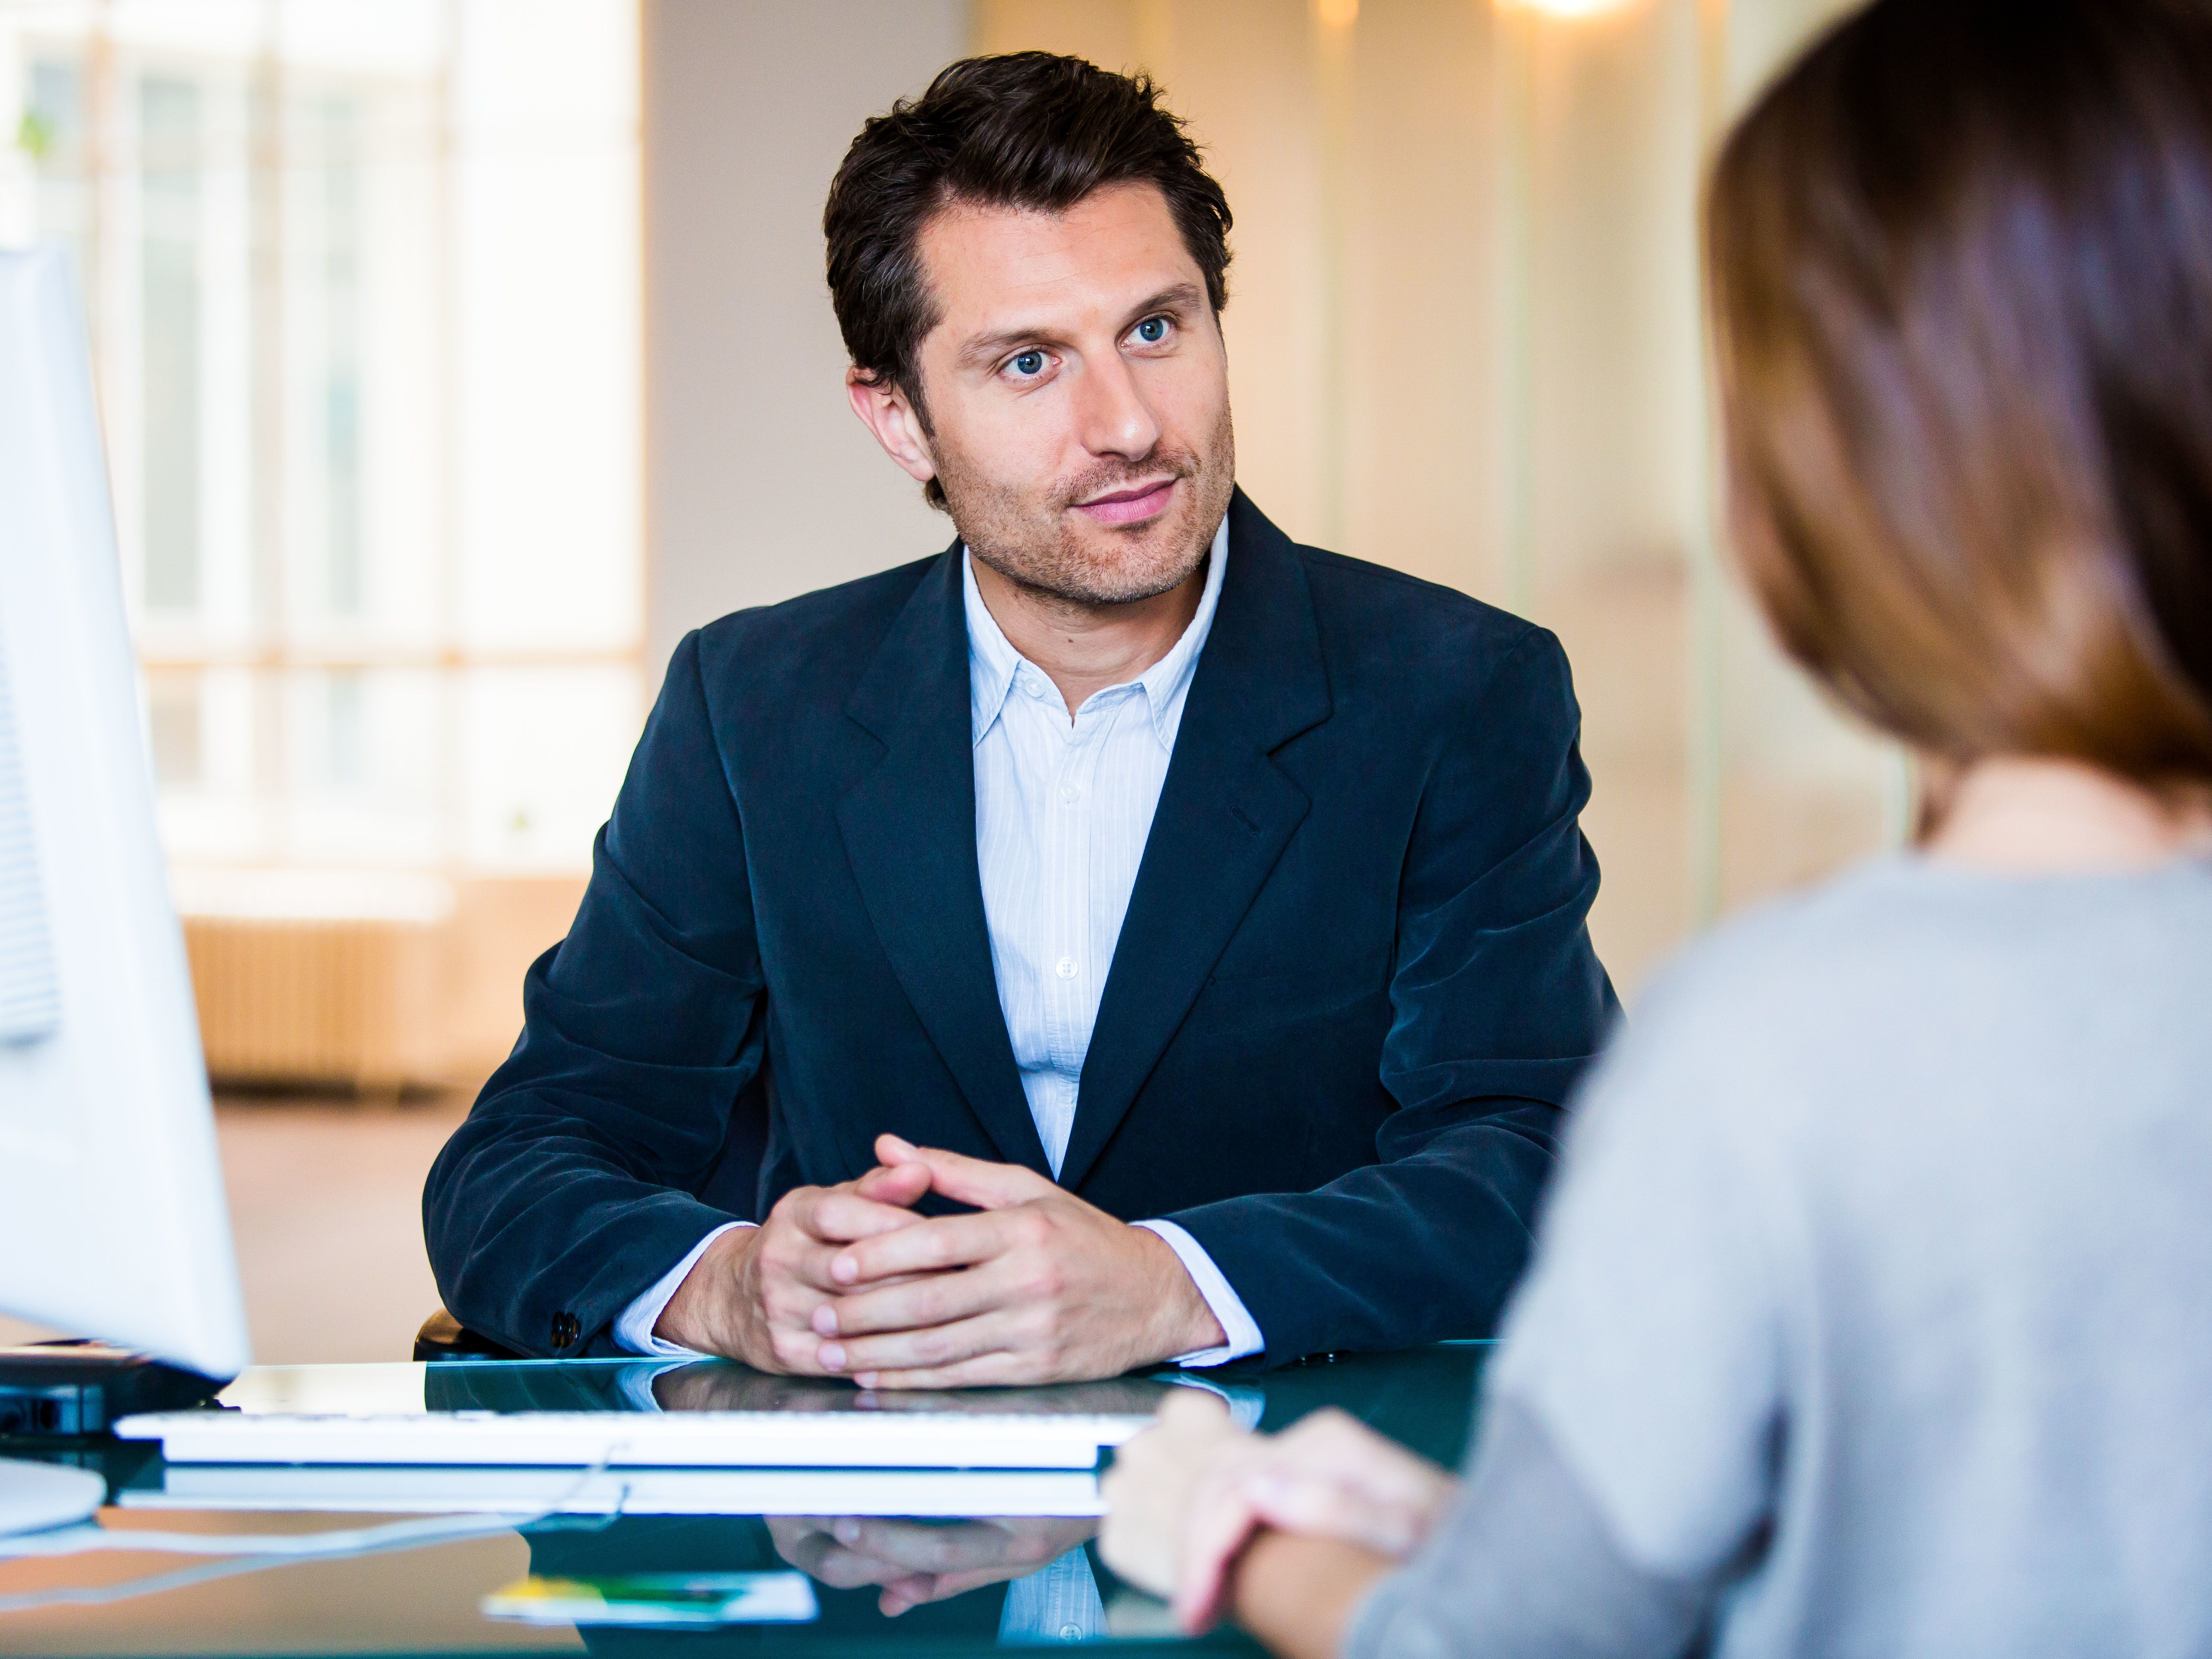 How to Answer Interview Questions About Your Ideal Boss